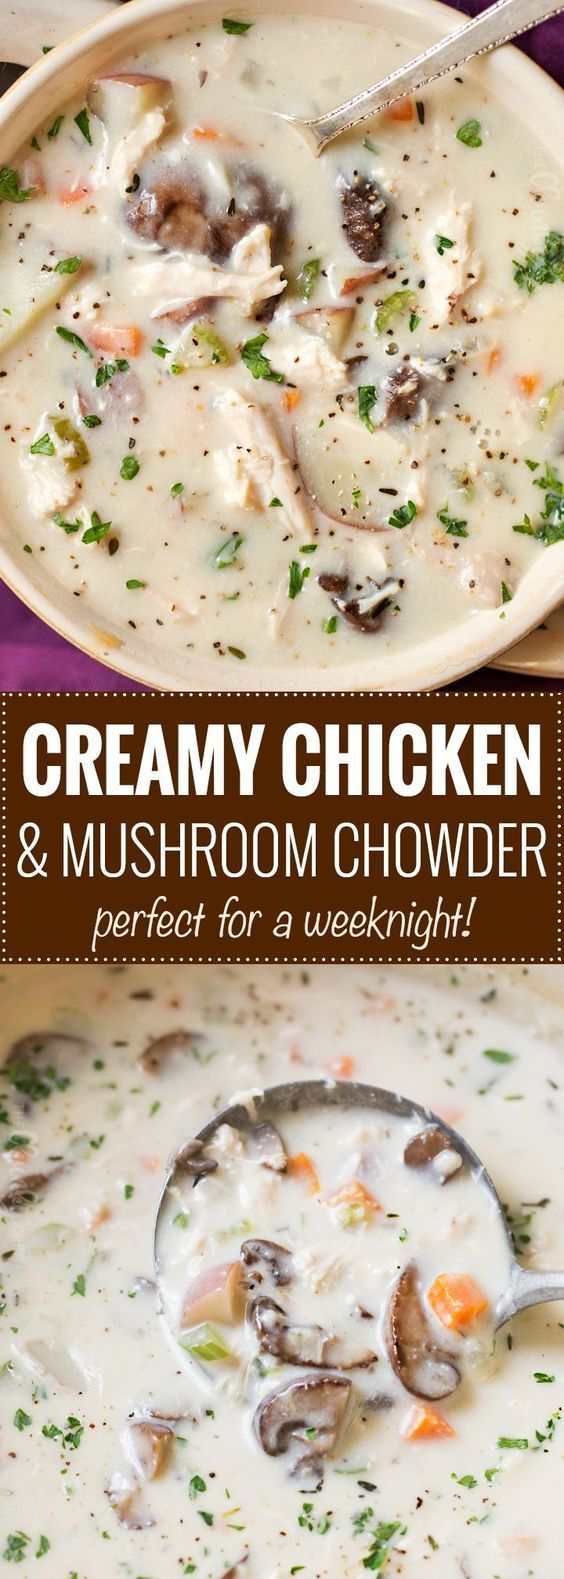 Creamy Chicken and Mushroom Chowder | Perfect for a cold weeknight meal, this chicken and mushroom chowder is thick, creamy and rich, plus it cooks in about 30 minutes! | https://thechunkychef.com | #chowder #souprecipe #mushrooms #potatoes #chowderrecipe #weeknightmeal